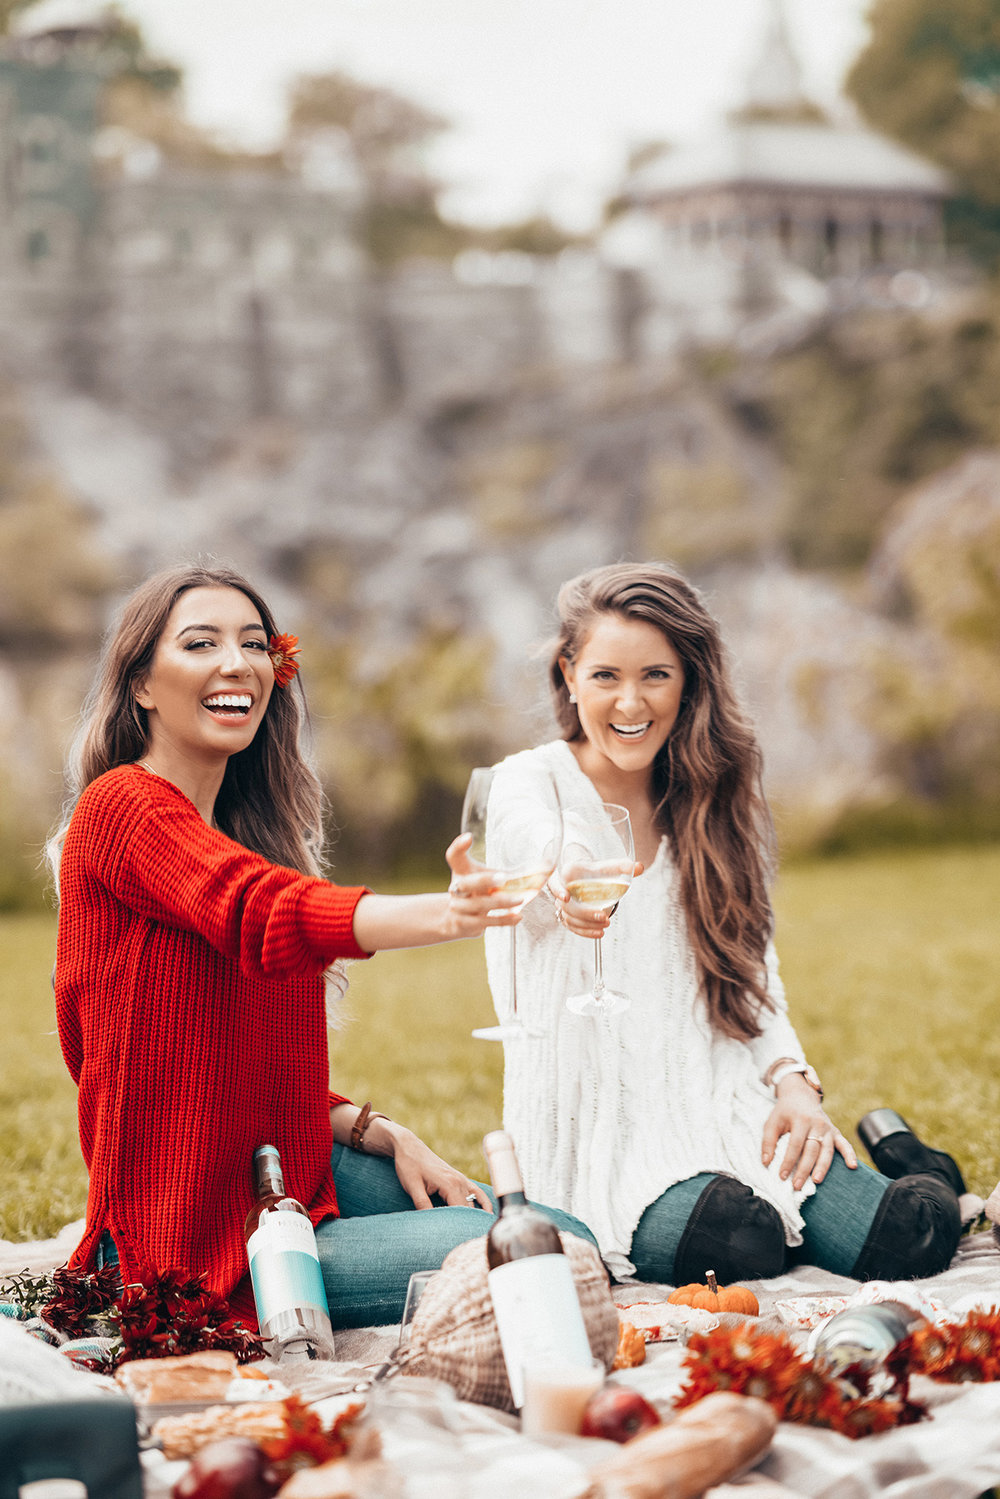 Fall Picnic Inspo with Rueda Verdejo Spanish White Wine. Cheers. Bloggers drink wine.